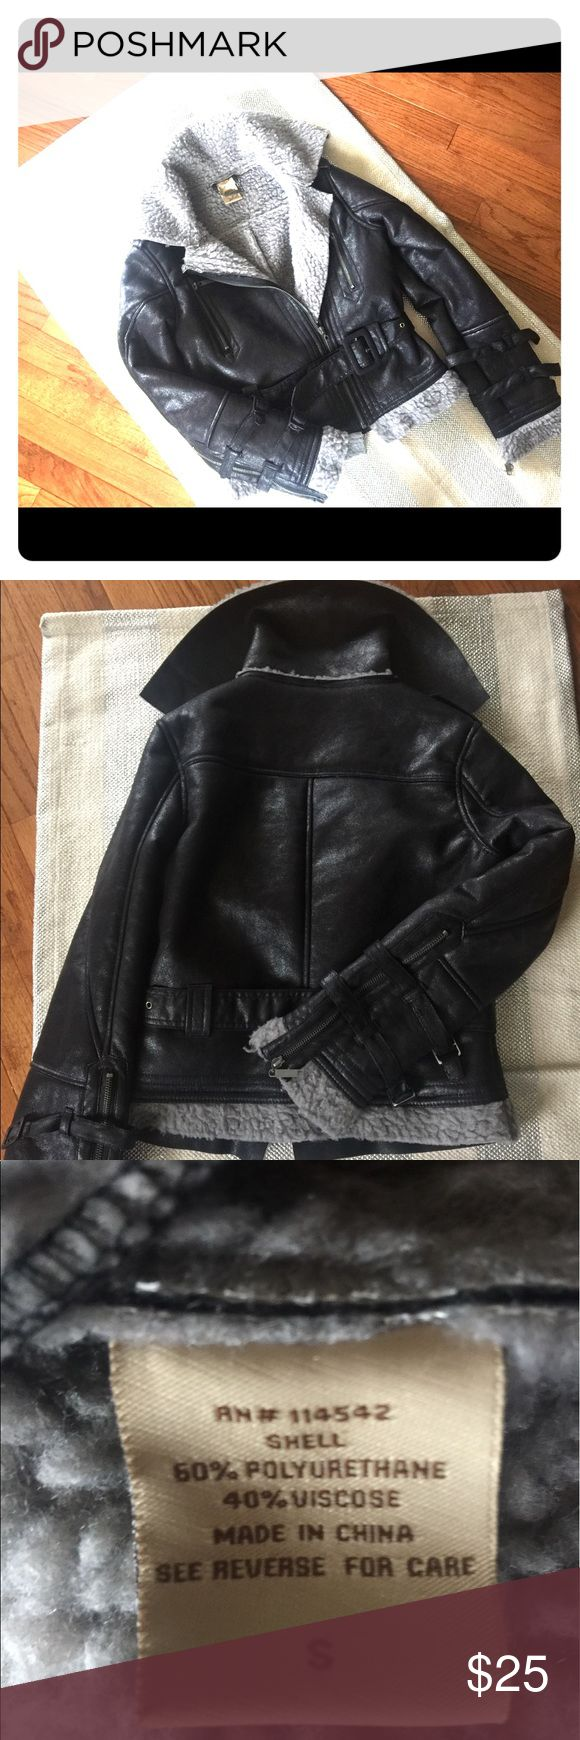 NWOT Jou Jou black leather-looking jacket S Black soft/shimmery exterior, grey wool-like lined interior jacket with zippered & buckled wrists & belt buckles waist.  Gun-metal colored hardware, 2 vertical zippered breast pockets.  I ripped the tags off intending to wear it out one night but ended up wearing something else instead, so it's actually never been worn at all.  No stains, odors, rips, etc.  New, cute, and won't crack/dry rot/look cheap the way pleather does.  It's exterior is…